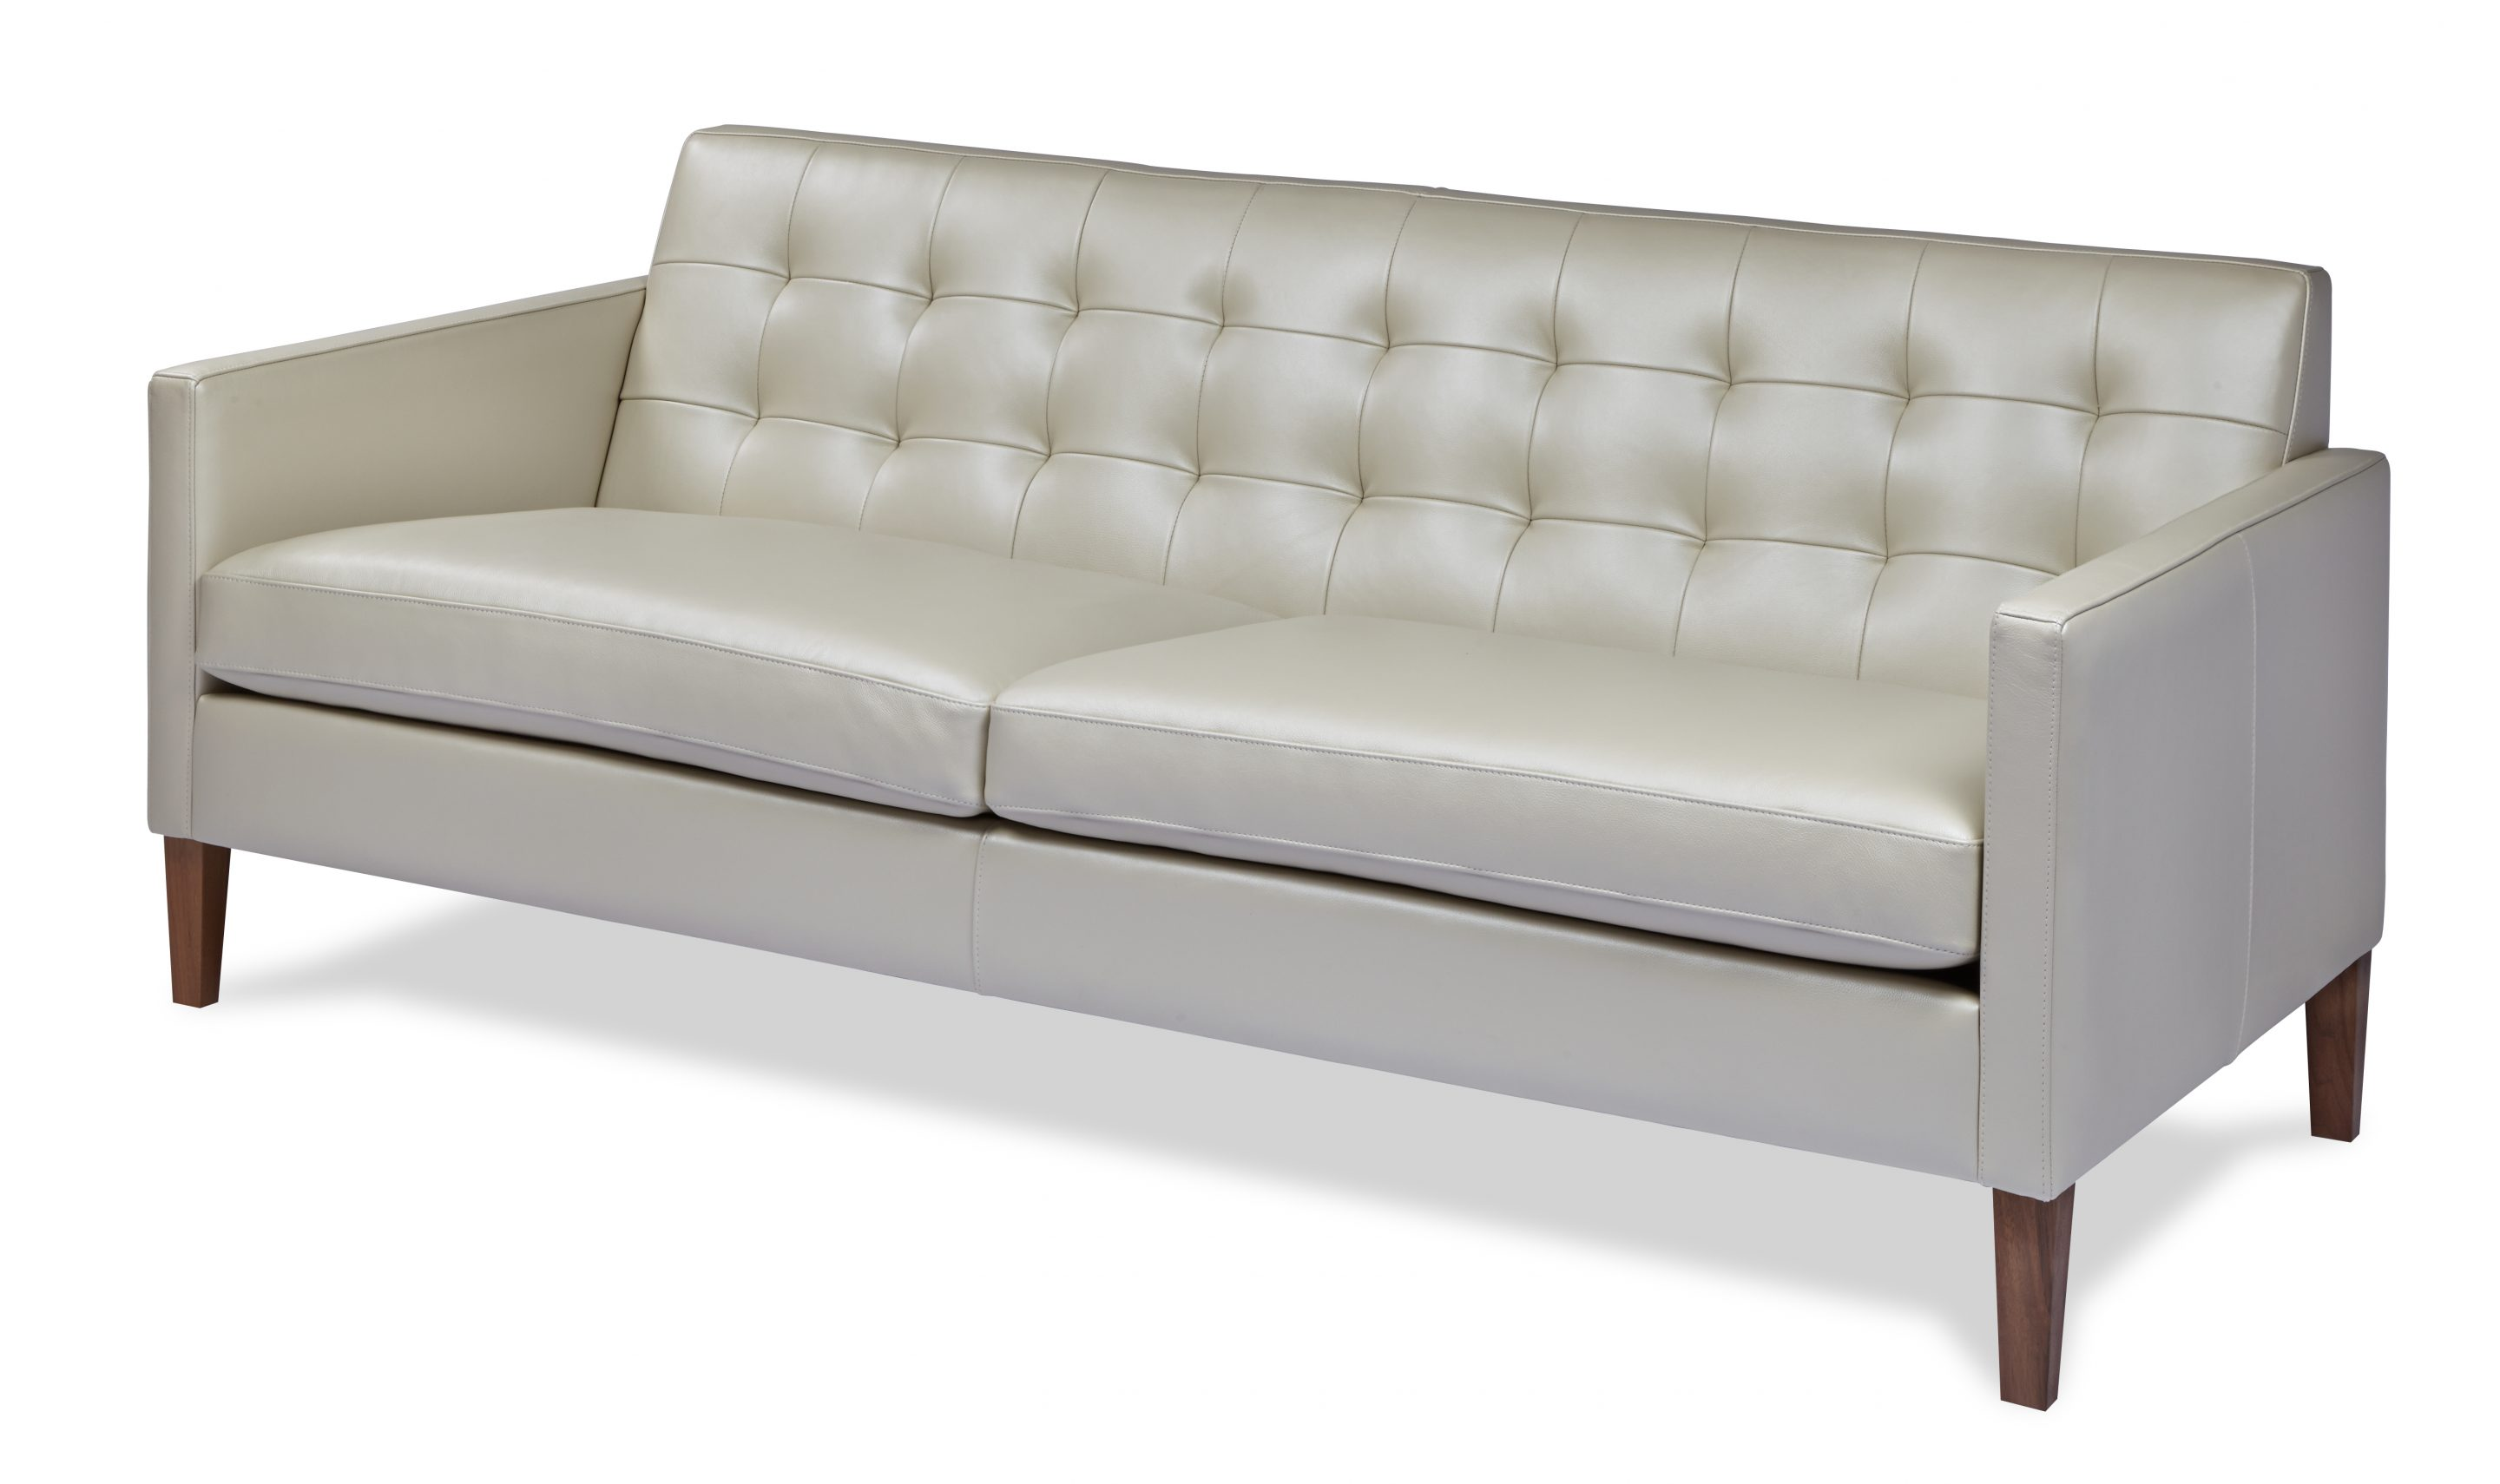 mkt-ainsley-sofa-45